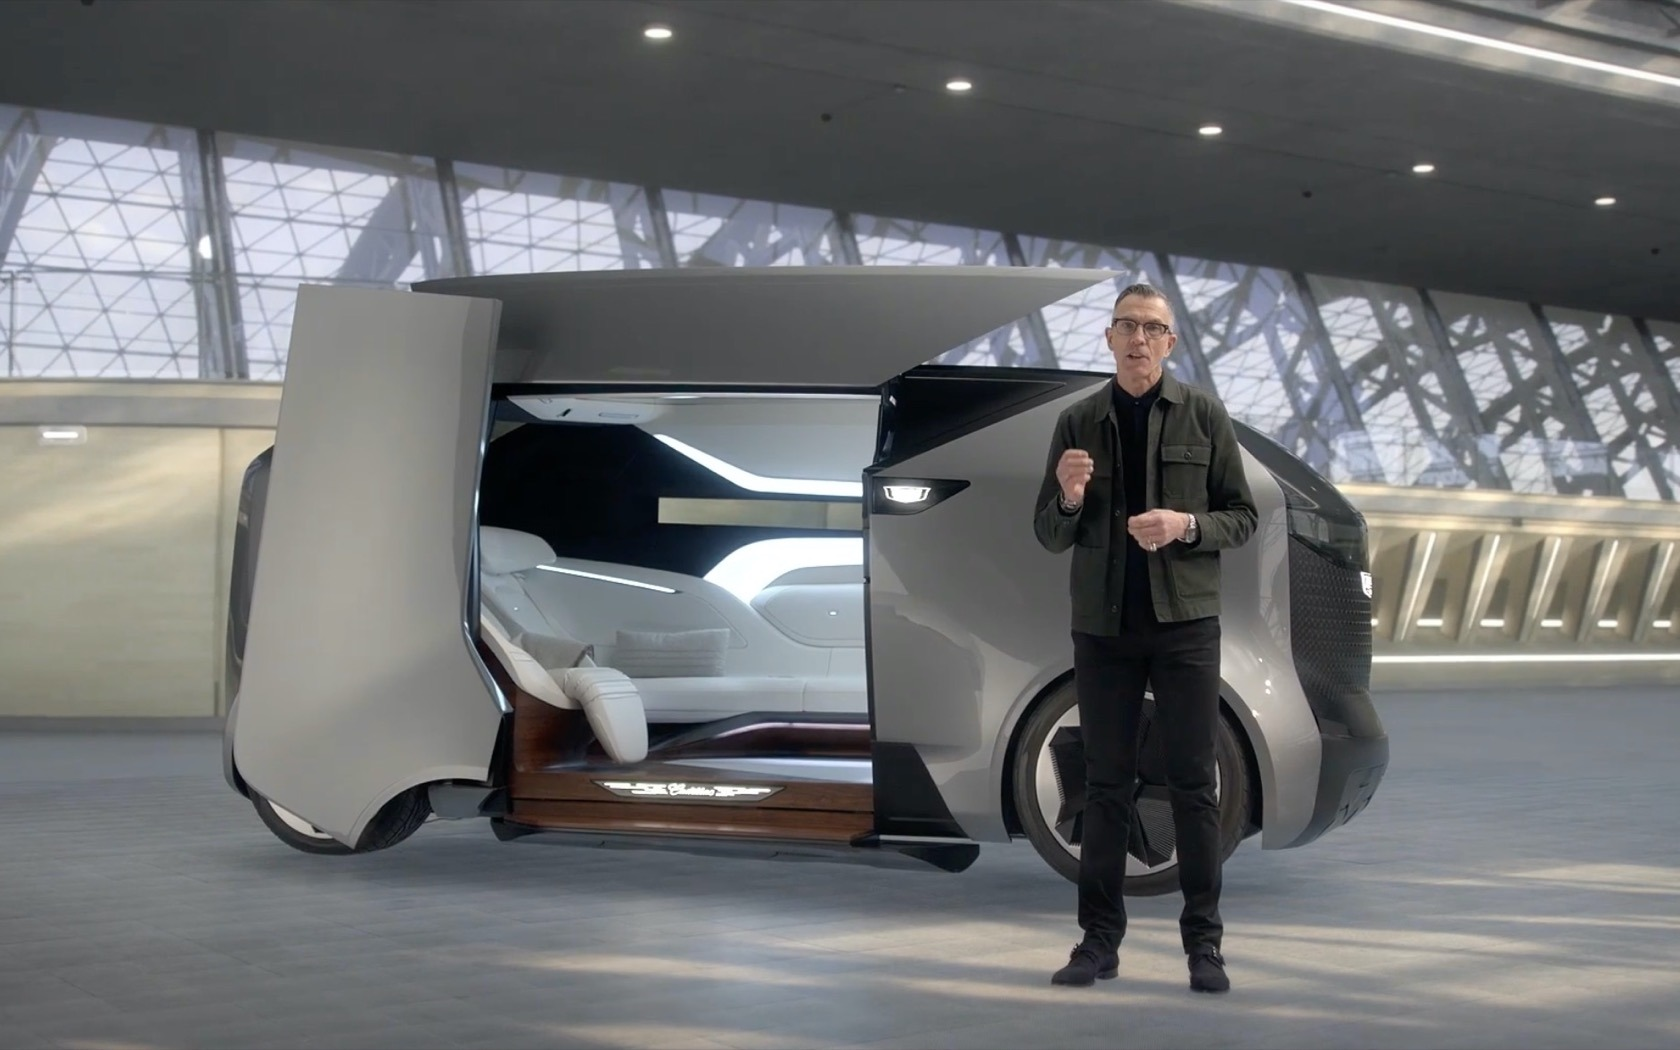 At the 2021 Consumer Electronics Show, which is being held online this year, the U.S.-based automotive corporation revealed its take on the future personal means of transportation.